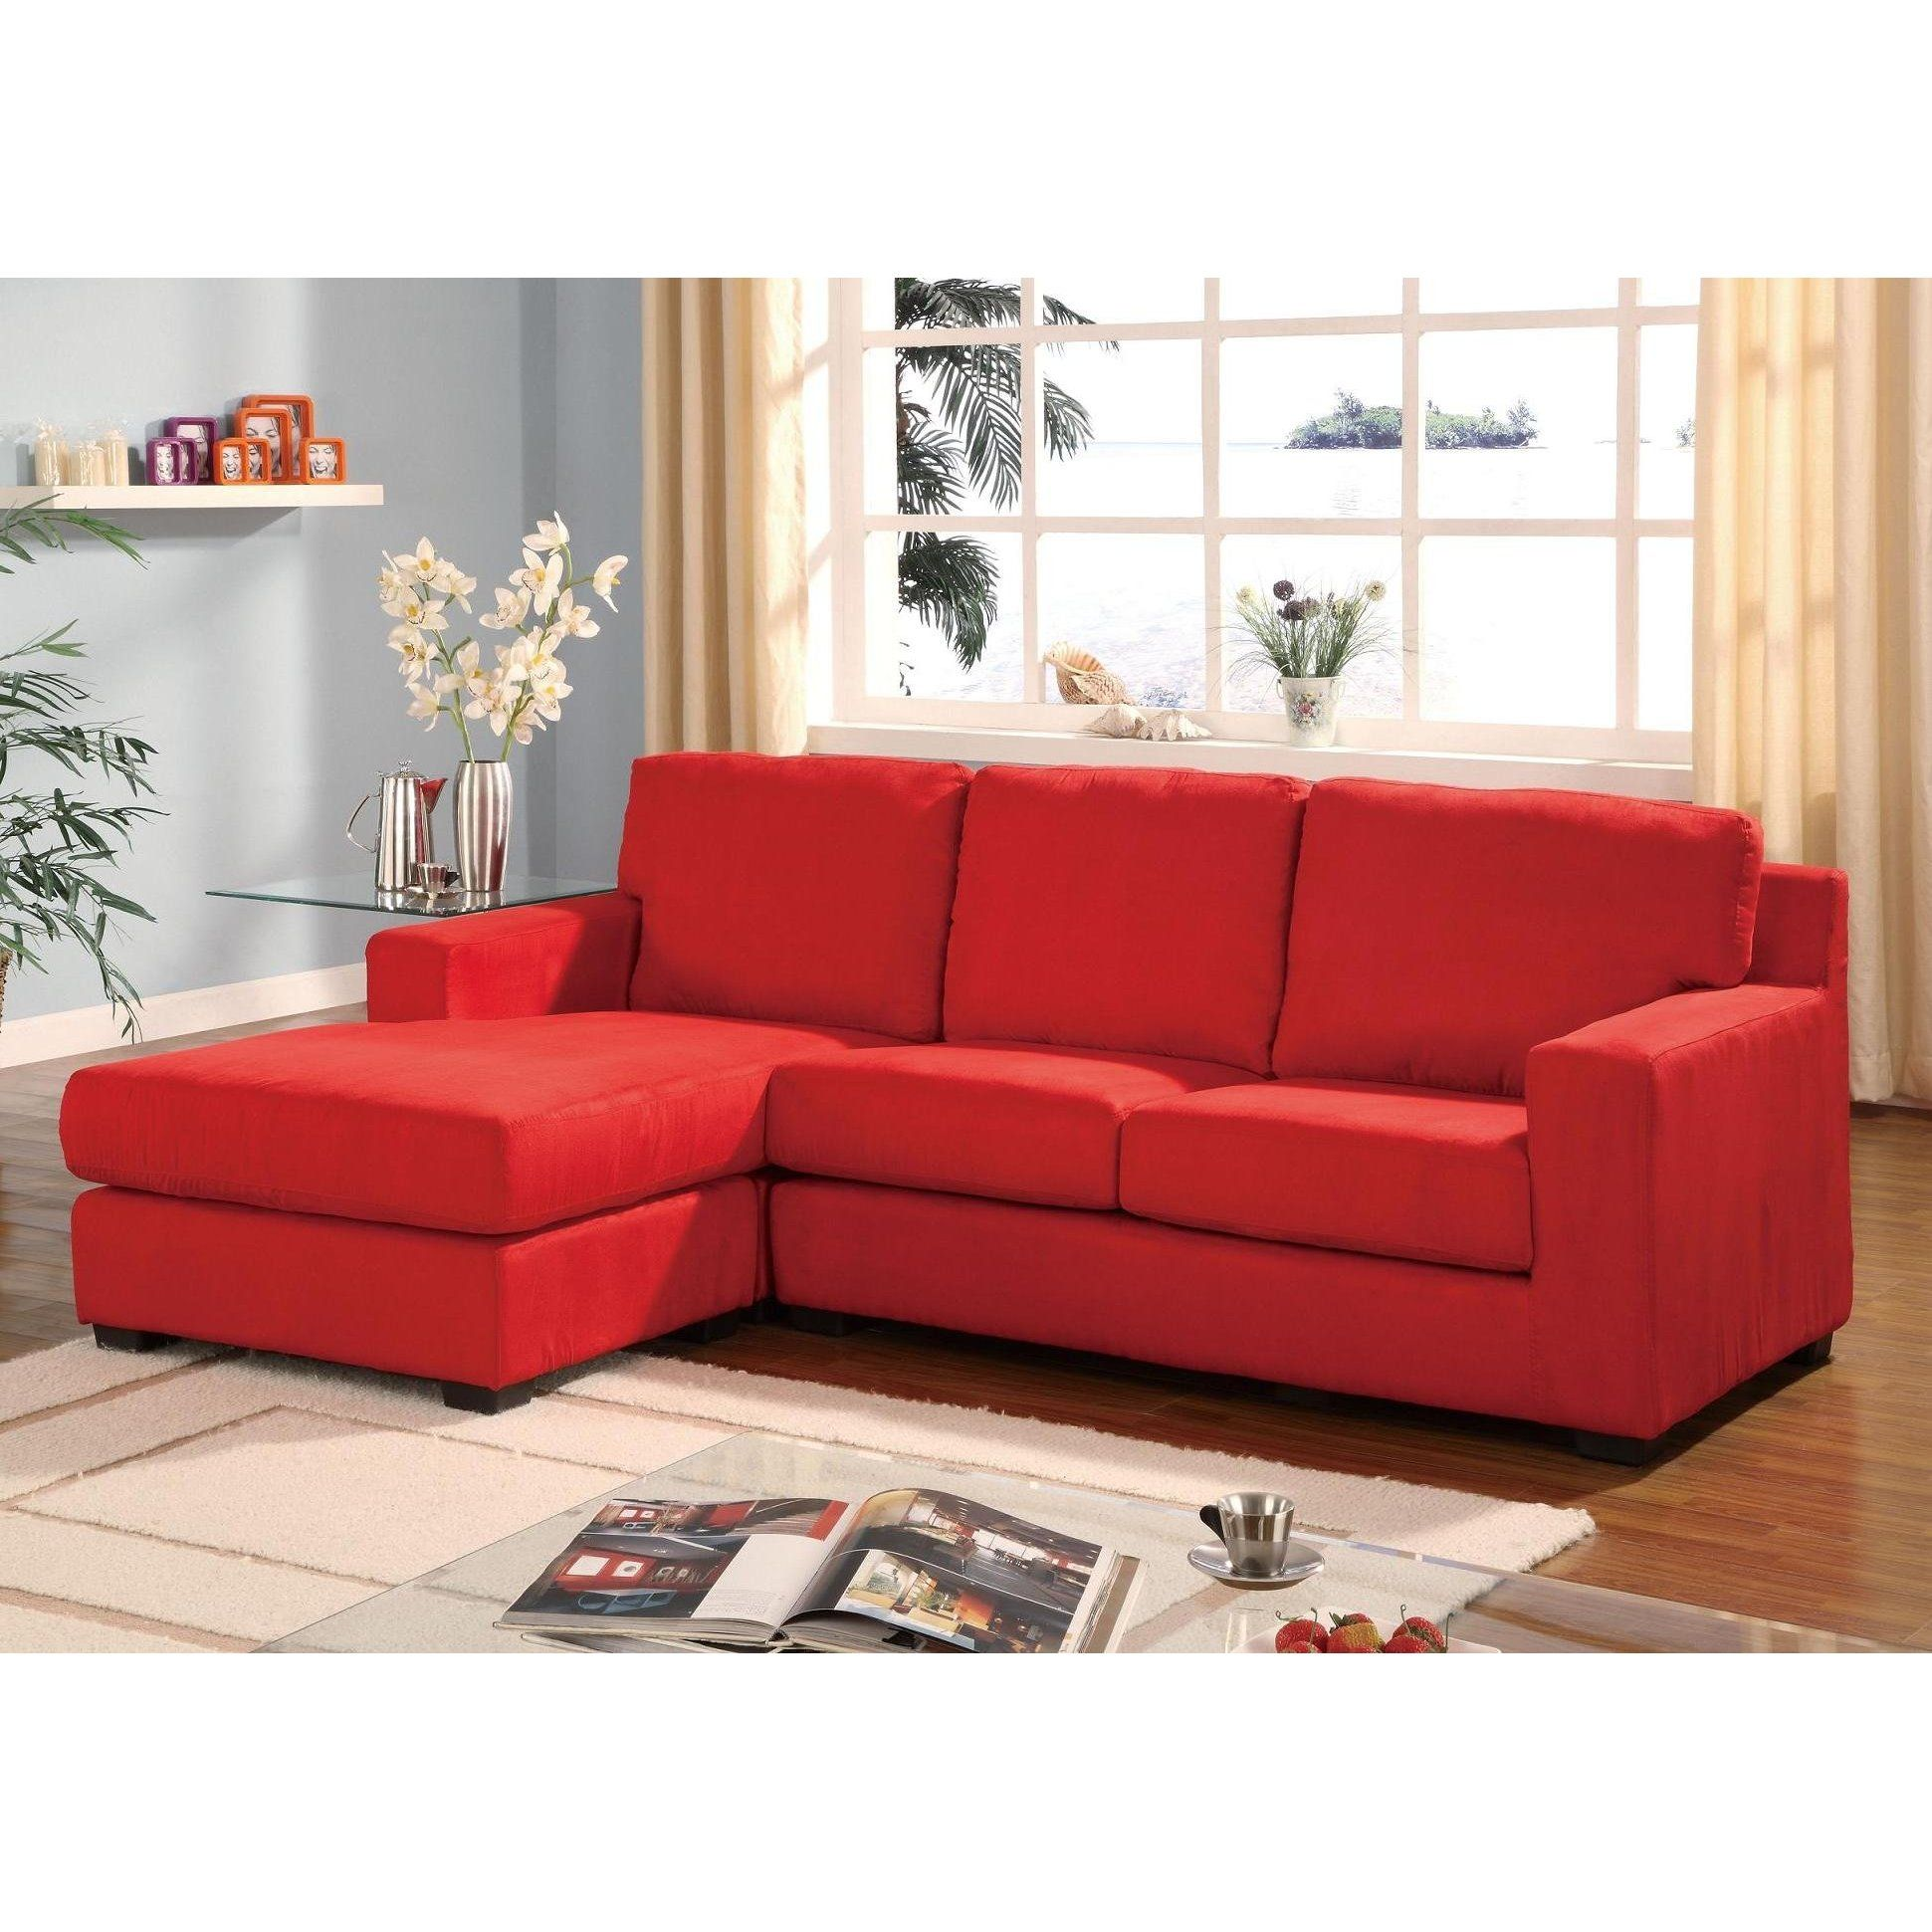 Red Microfiber Multifunction Reversible Sectional Sofa Chase